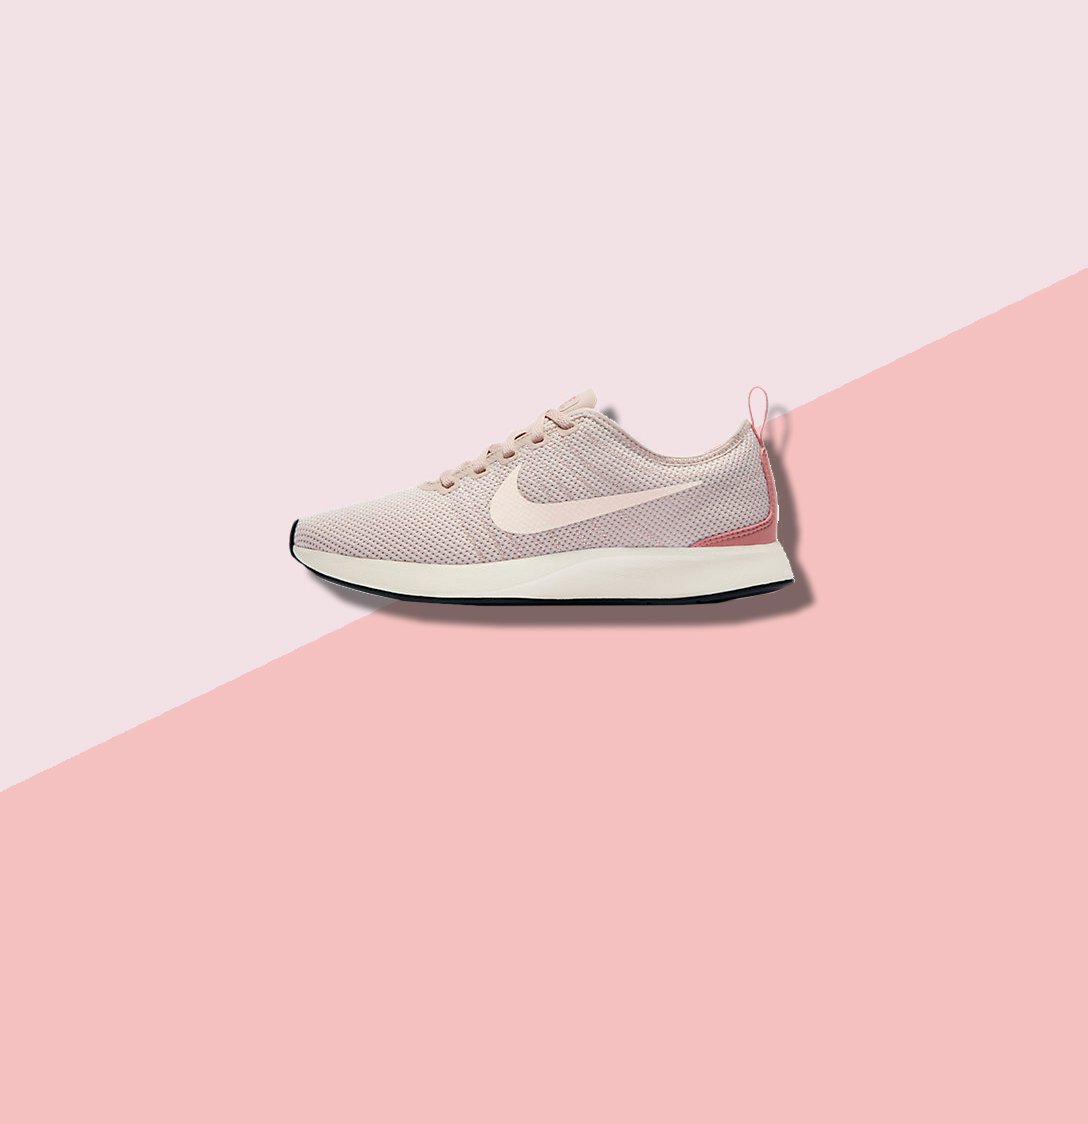 los angeles 66963 221c8 Nike s Millennial Pink Collection Is Here—and It s Amazing